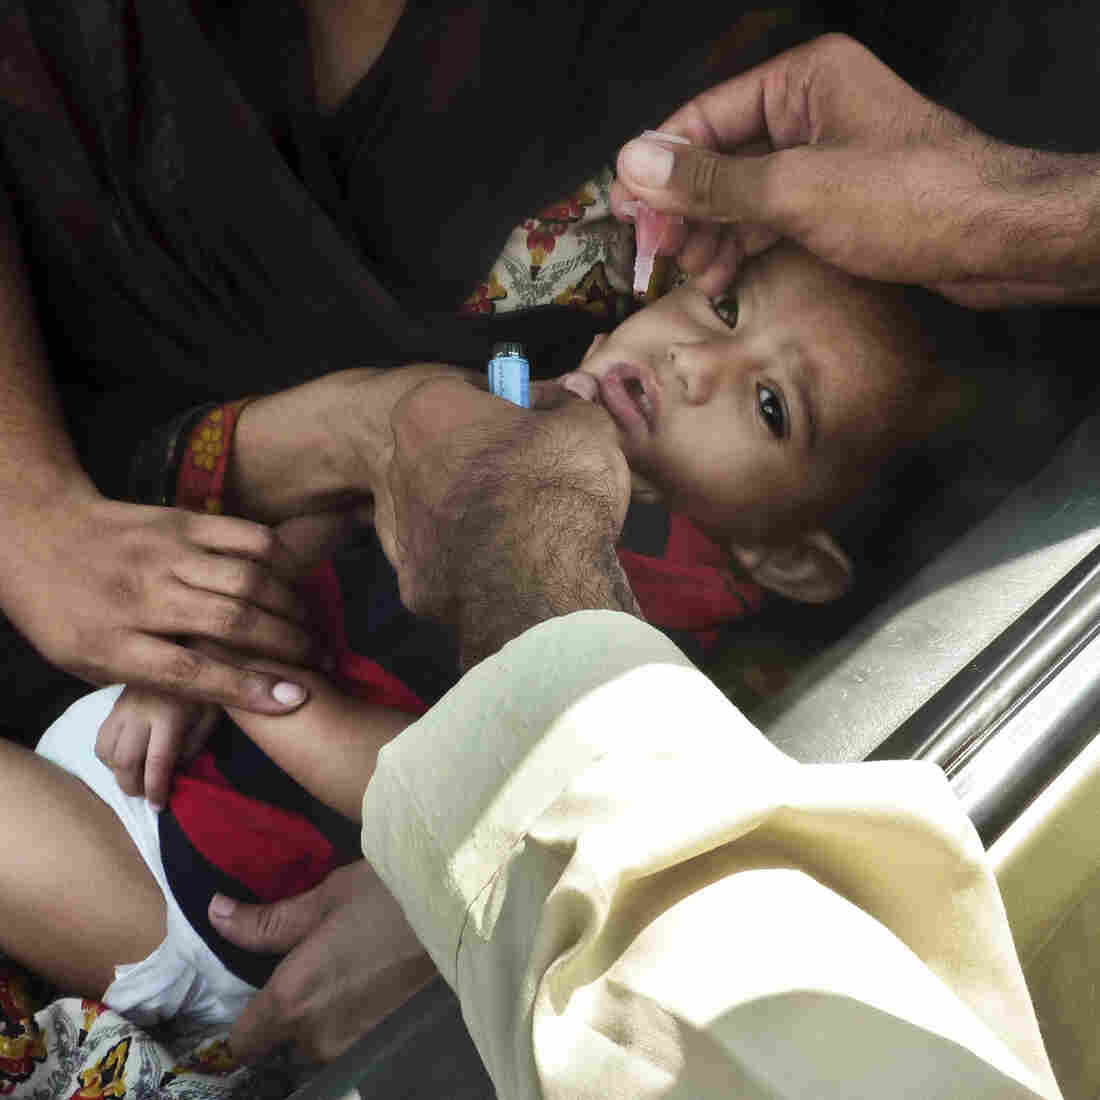 A Polio Outbreak In Pakistan Reveals Gaps In Vaccination